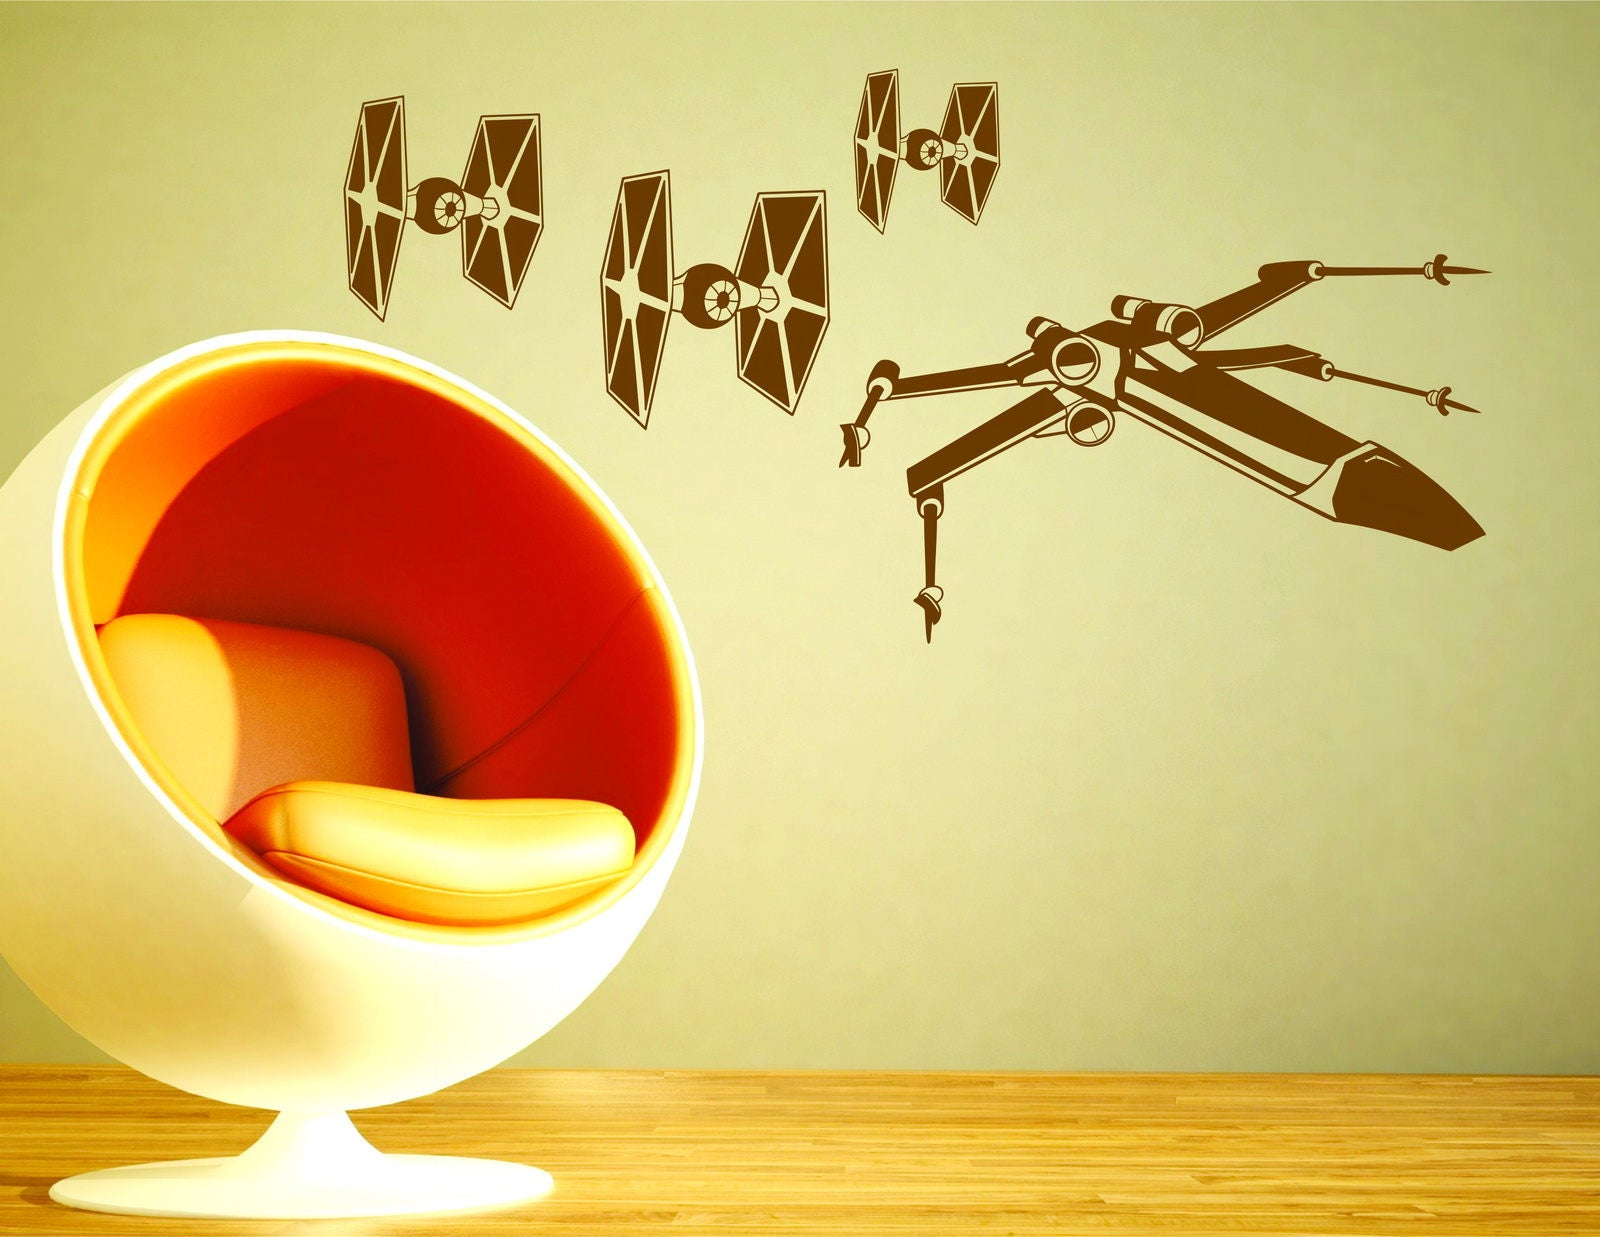 Star Wars Tie Fighter X-Wing Starfighter Decorative Vinyl Wall ...